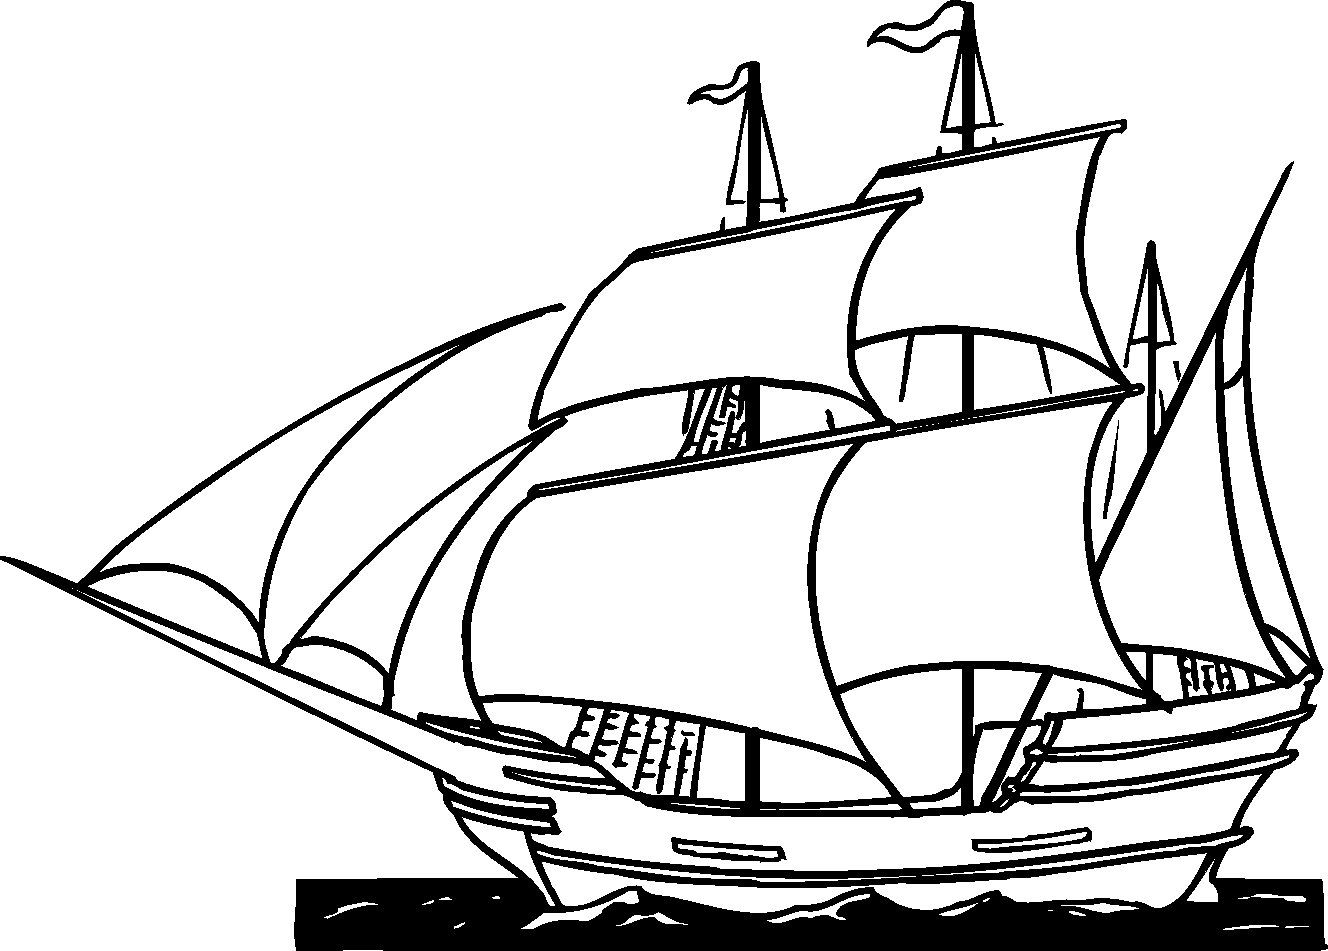 free printable ships coloring pages for boys - Coloring Pages Boats